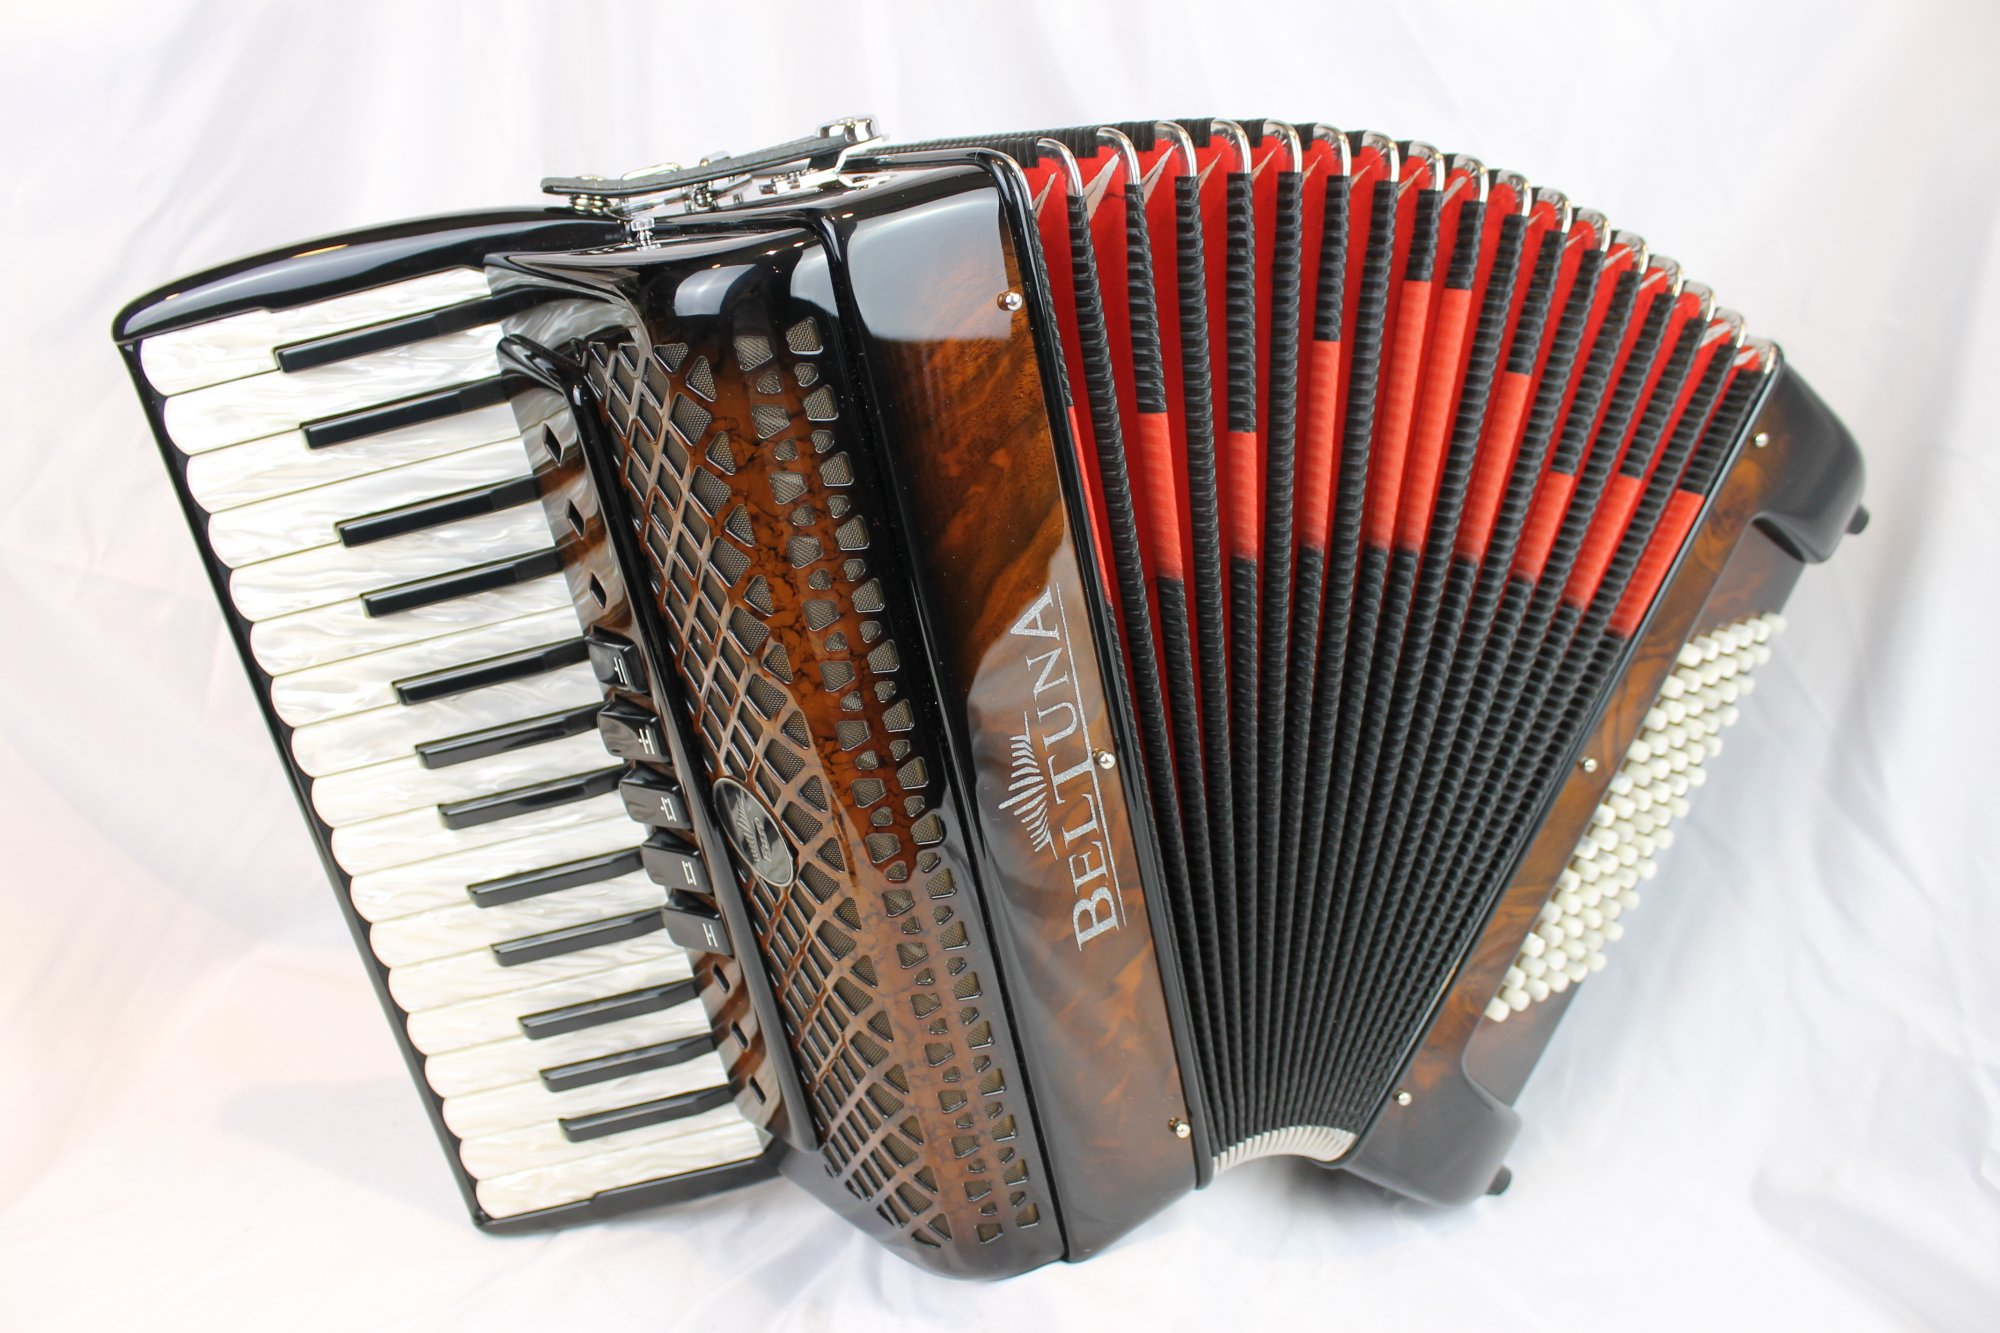 NEW Walnut Root Beltuna Euro III Piano Accordion LMM 30 72